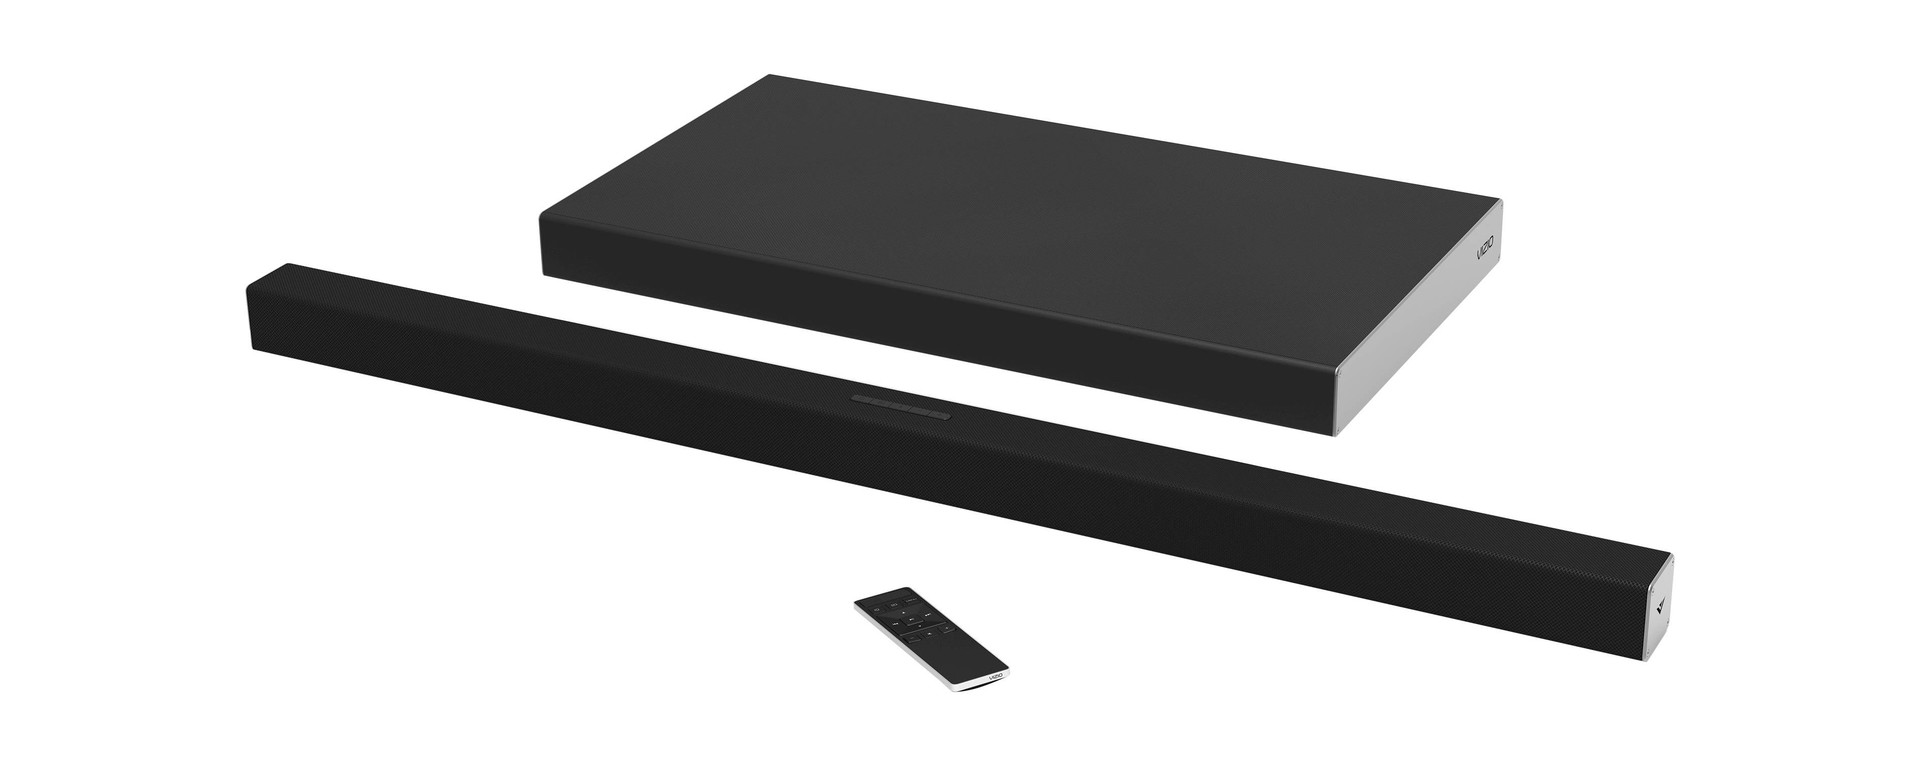 Vizio SmartCast Sound Bar: Review and Configuration (Updated